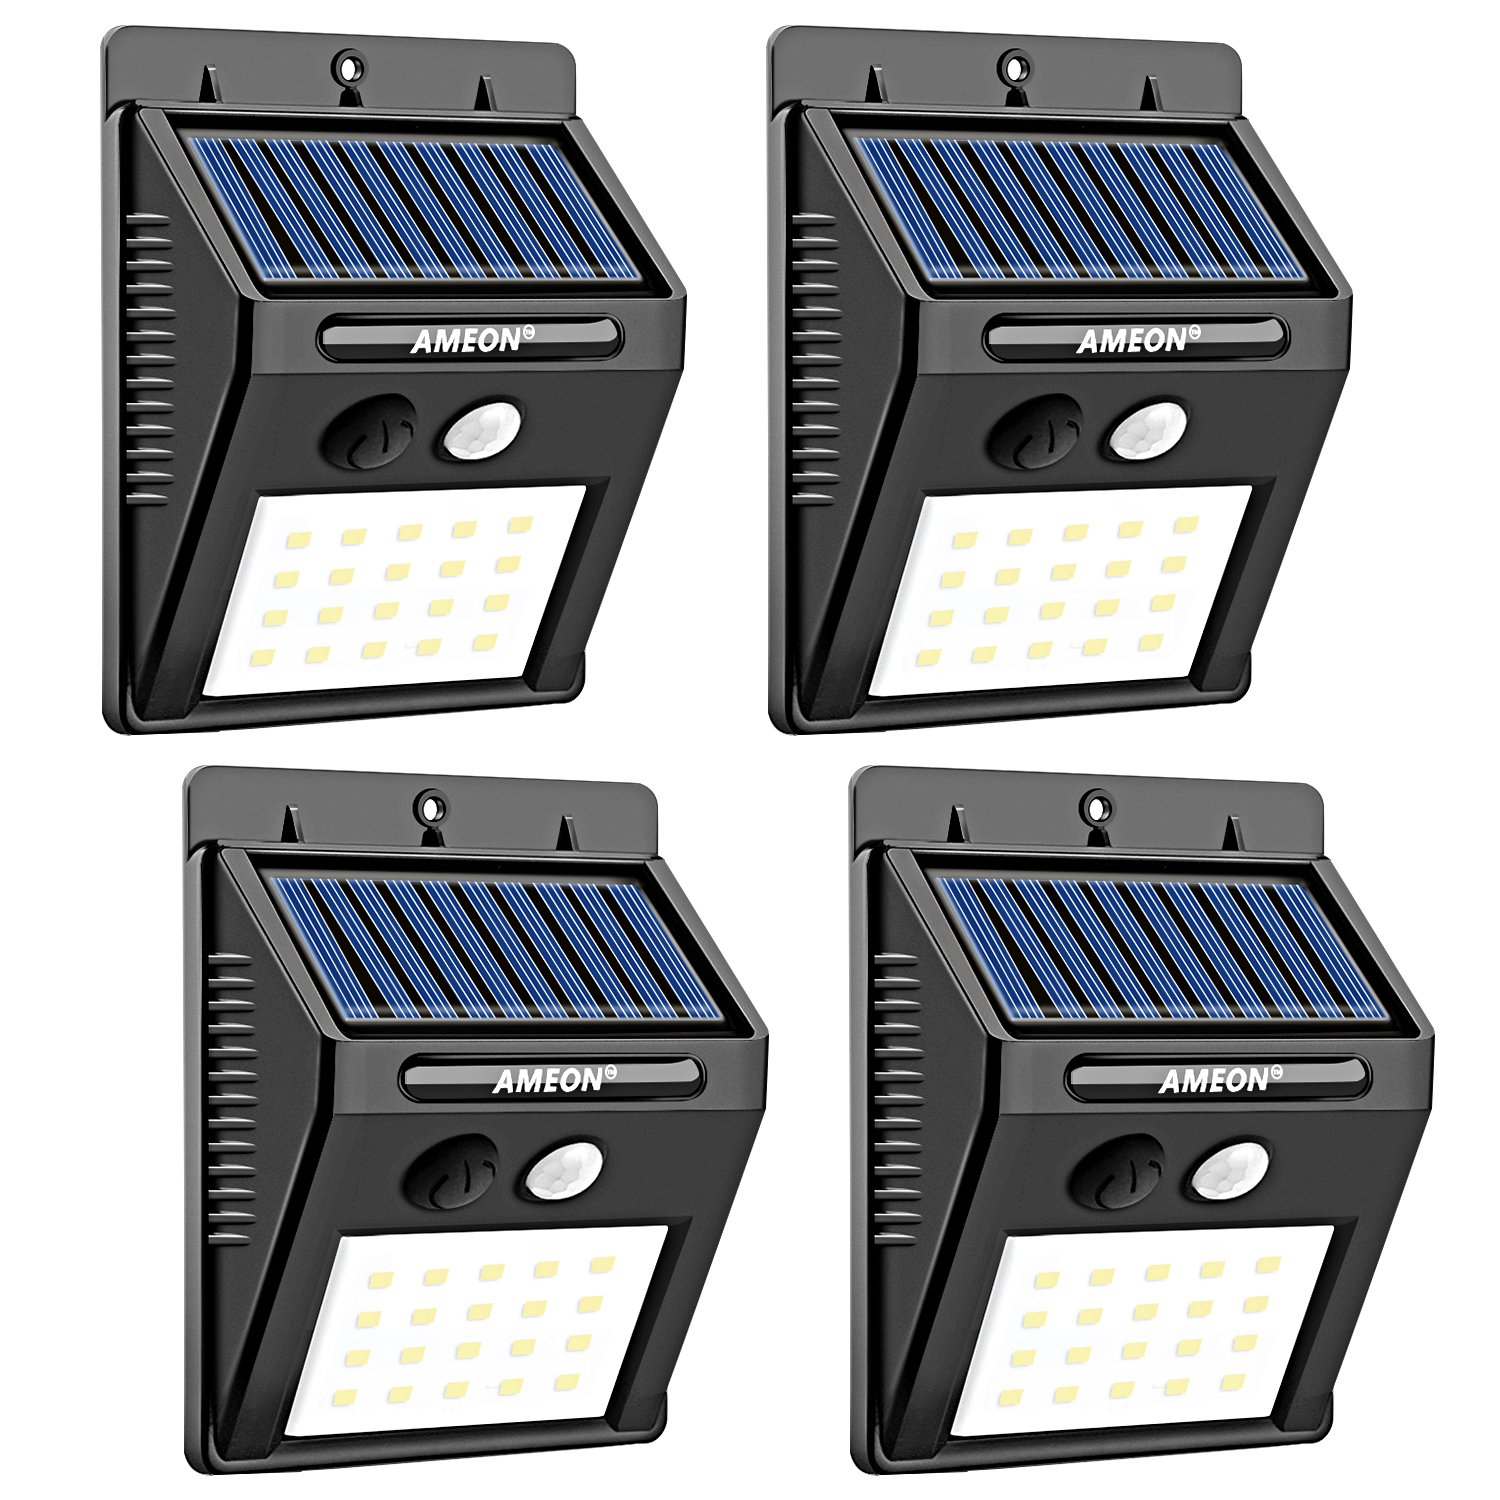 AMEON Solar Lights Outdoor, 20 LED Wireless Waterproof Motion Sensor Lights for Patio, Deck, Yard, Garden with Motion Activated Auto On/Off (4-Pack) by AMEON